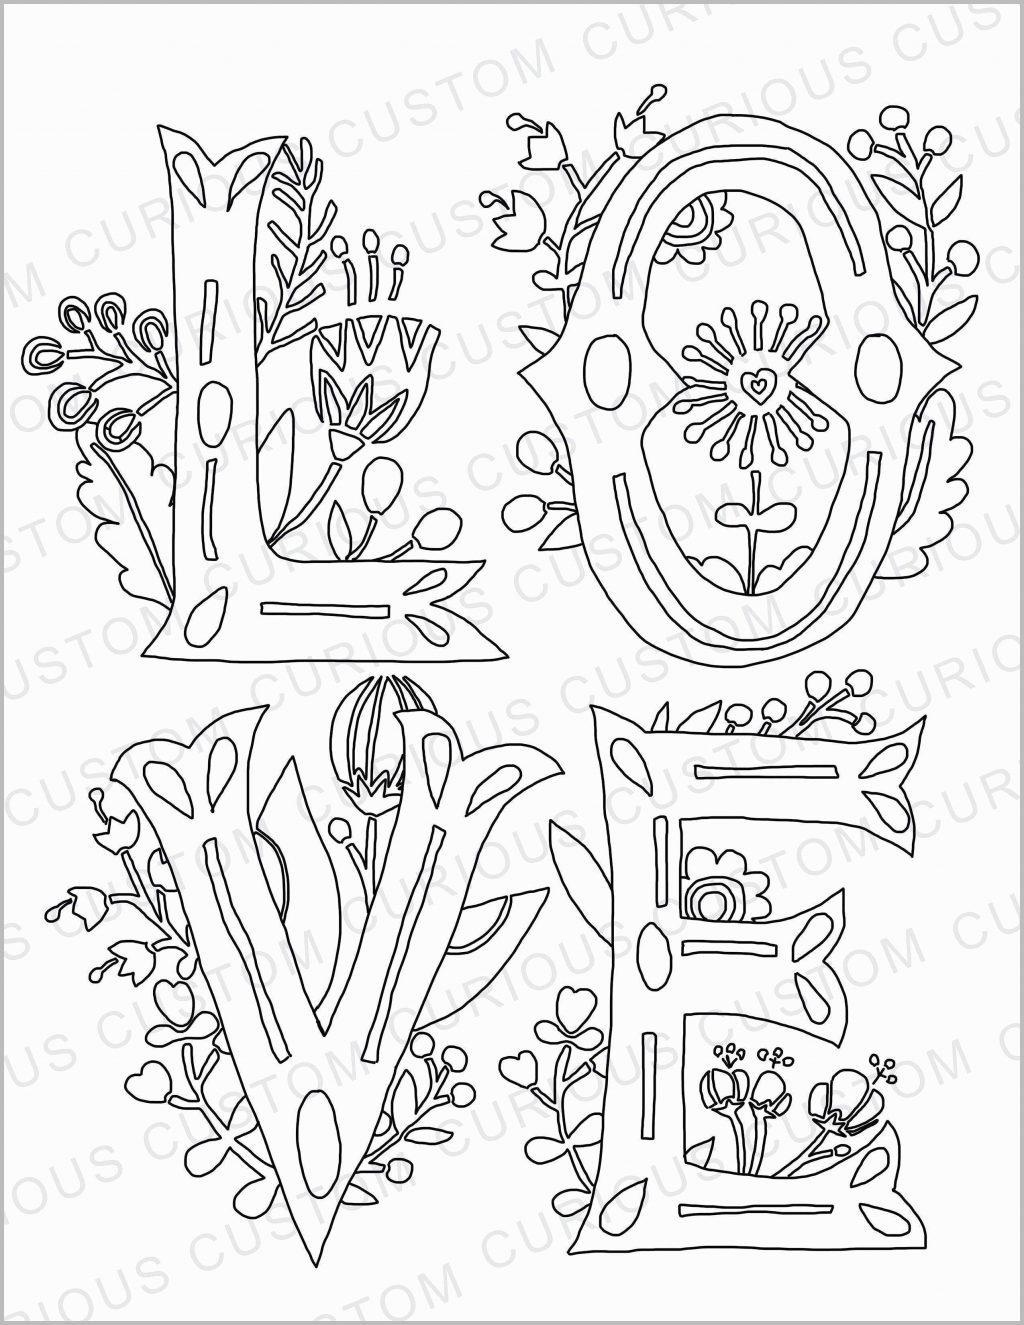 Coloring Book World ~ Free Download Printable Wedding Colouring - Free Printable Personalized Wedding Coloring Book